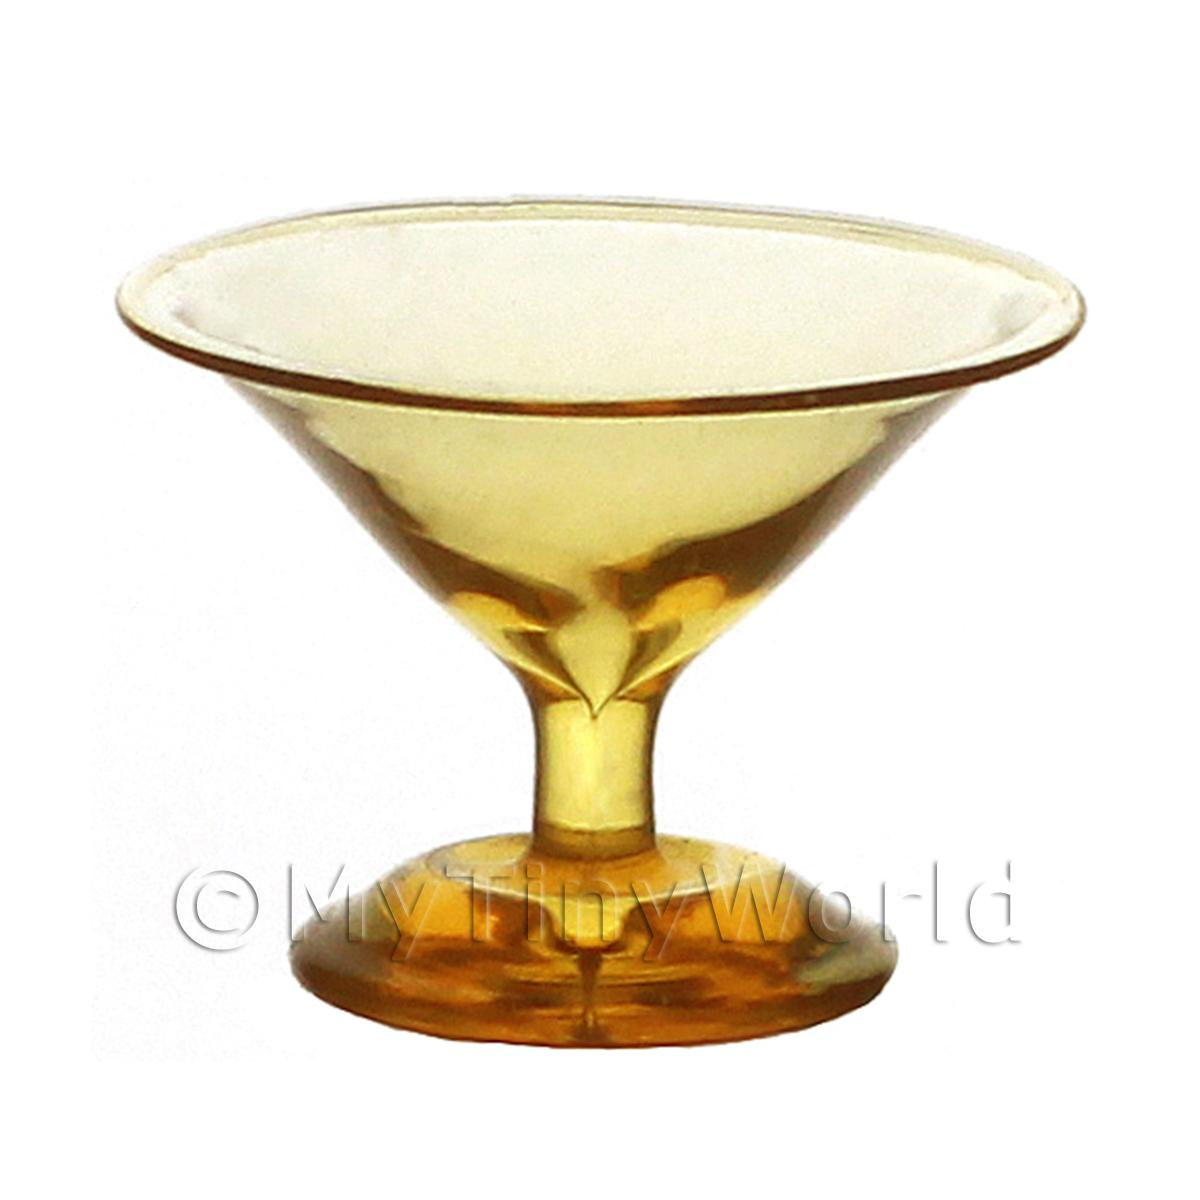 Dolls House Miniature Handmade Amber Martini Glass